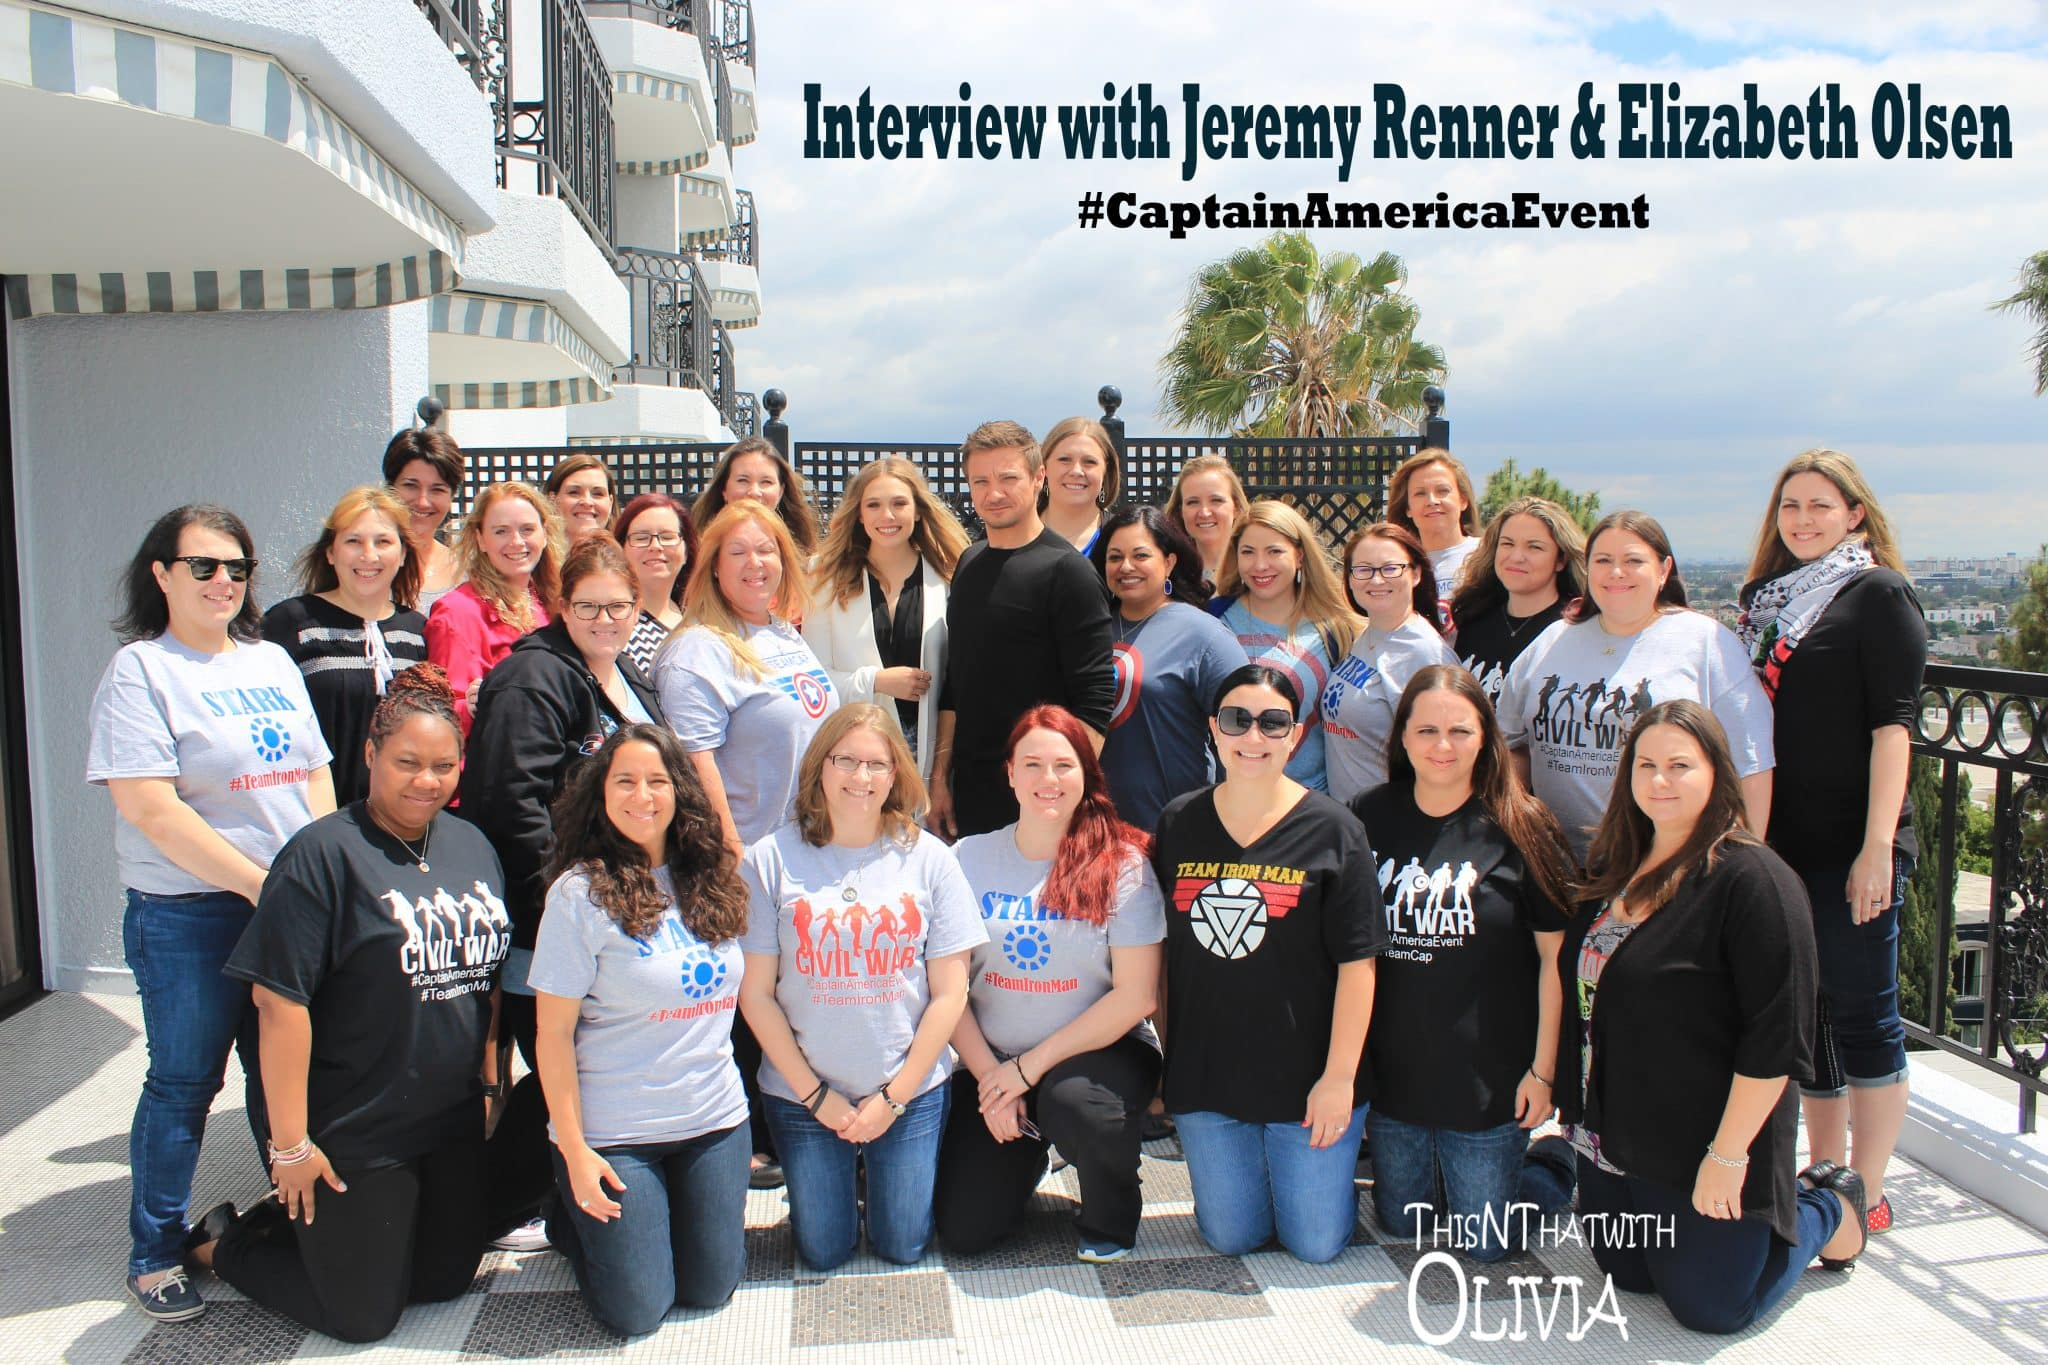 Interview with Jeremy Renner + Elizabeth Olsen #CaptainAmericaEvent